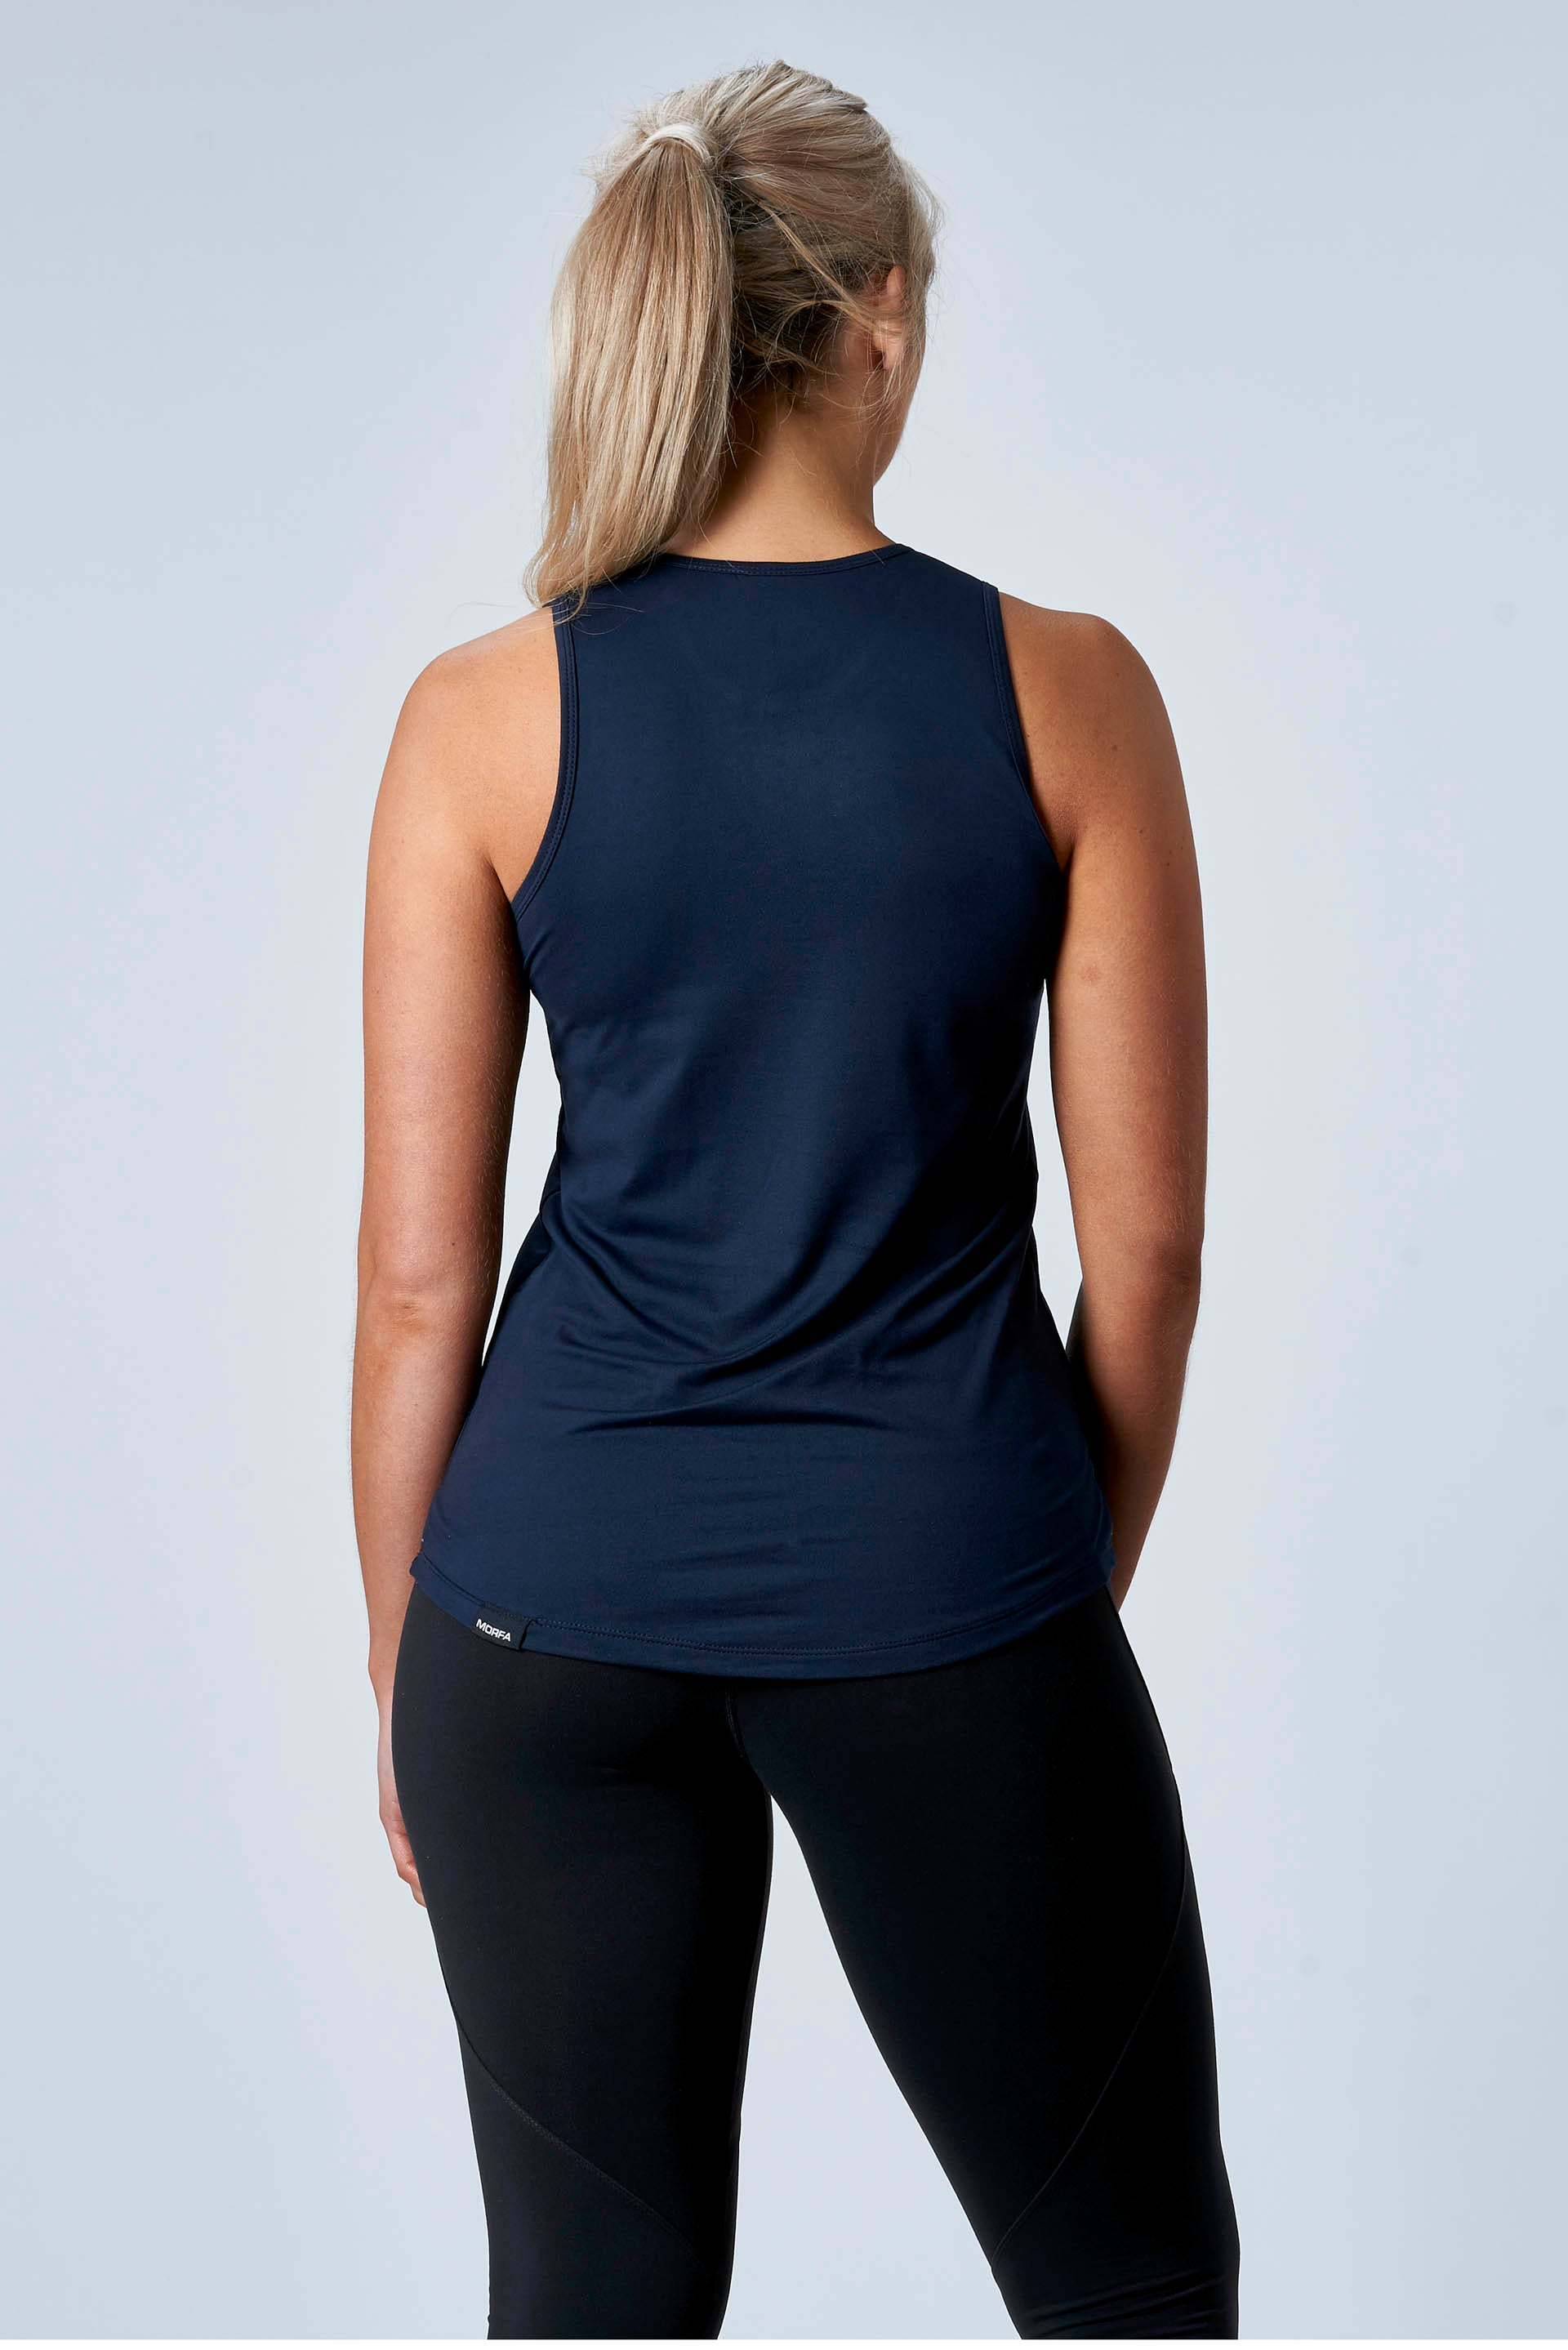 CarbonTech - HIGH NECK TANK - NAVY